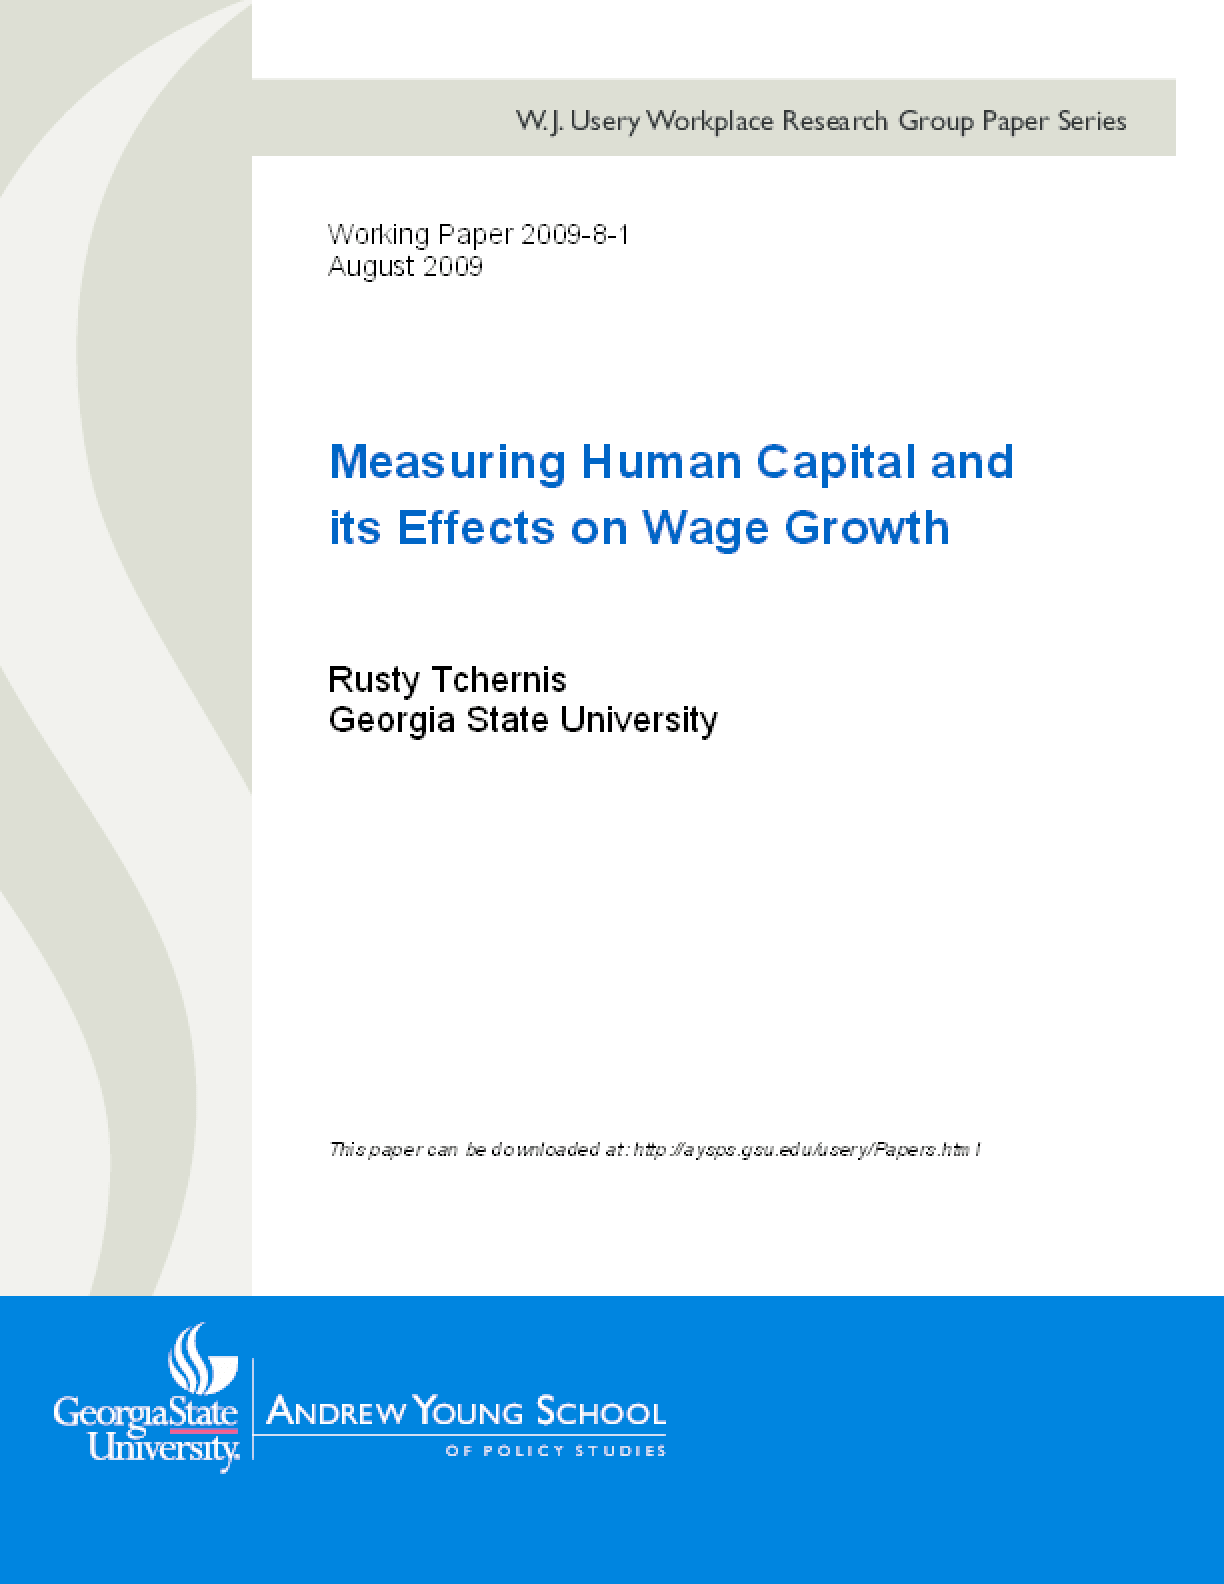 Measuring Human Capital and its Effects on Wage Growth